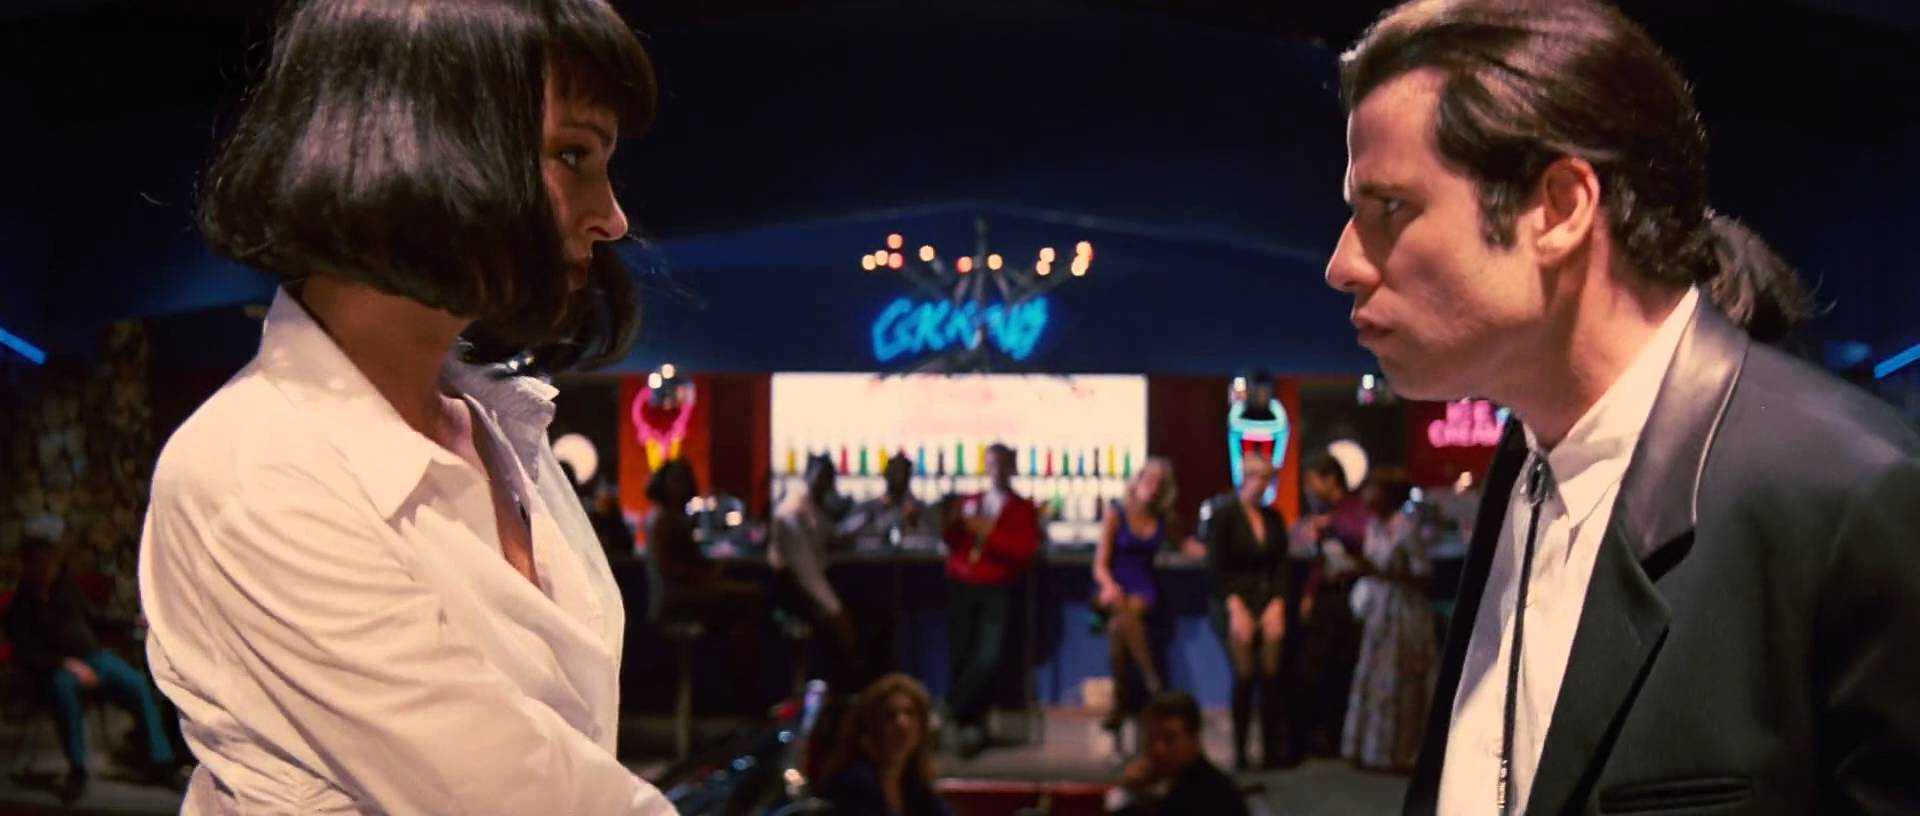 Beyond The Frame Pulp Fiction The American Society Of Cinematographers